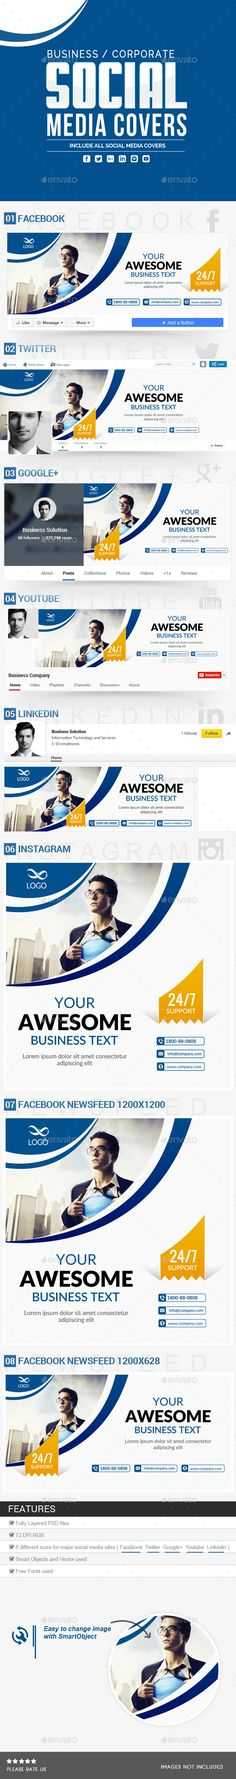 Linkedin social network business card social networks and business corporate social media covers colourmoves